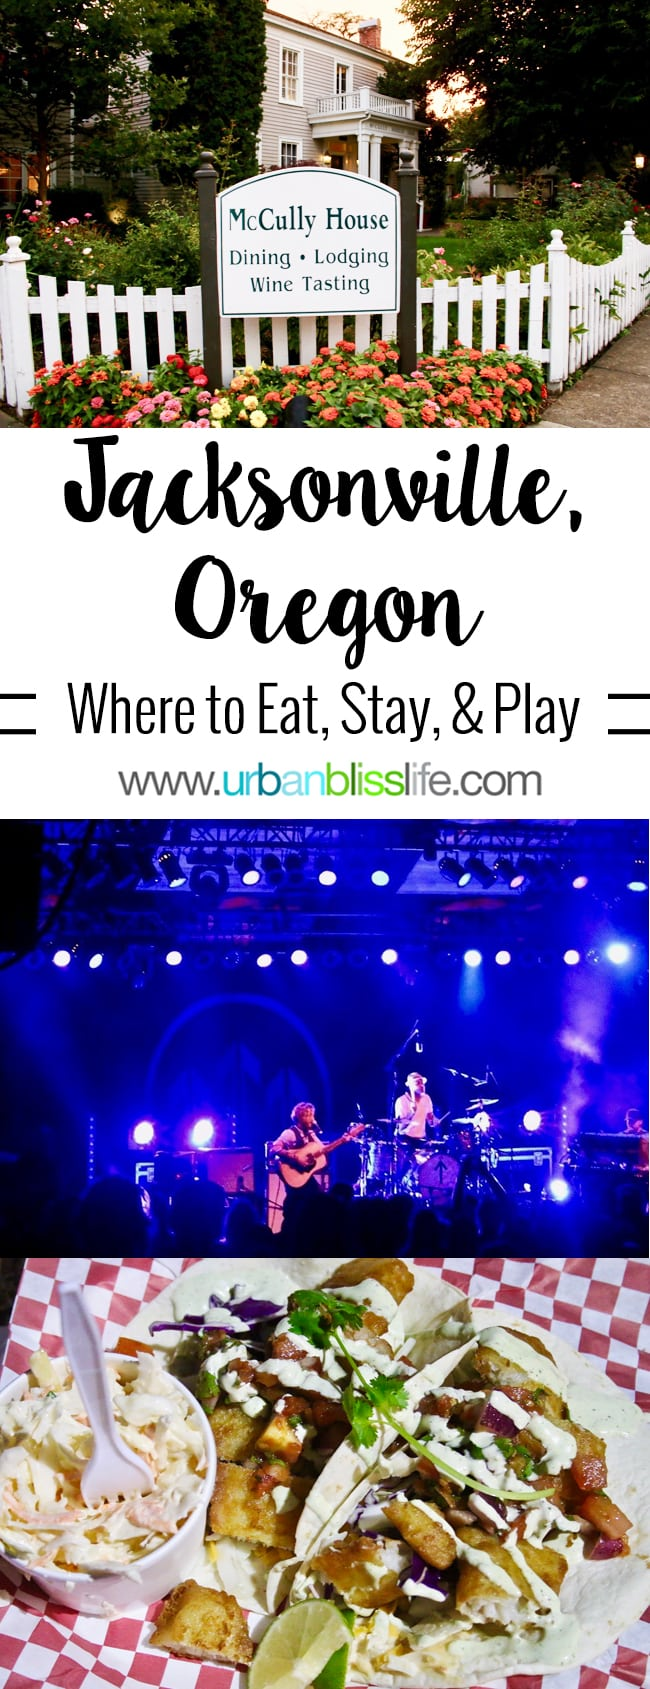 Where to Eat, Stay, Play in Jacksonville, Oregon. Travel tips on UrbanBlissLife.com